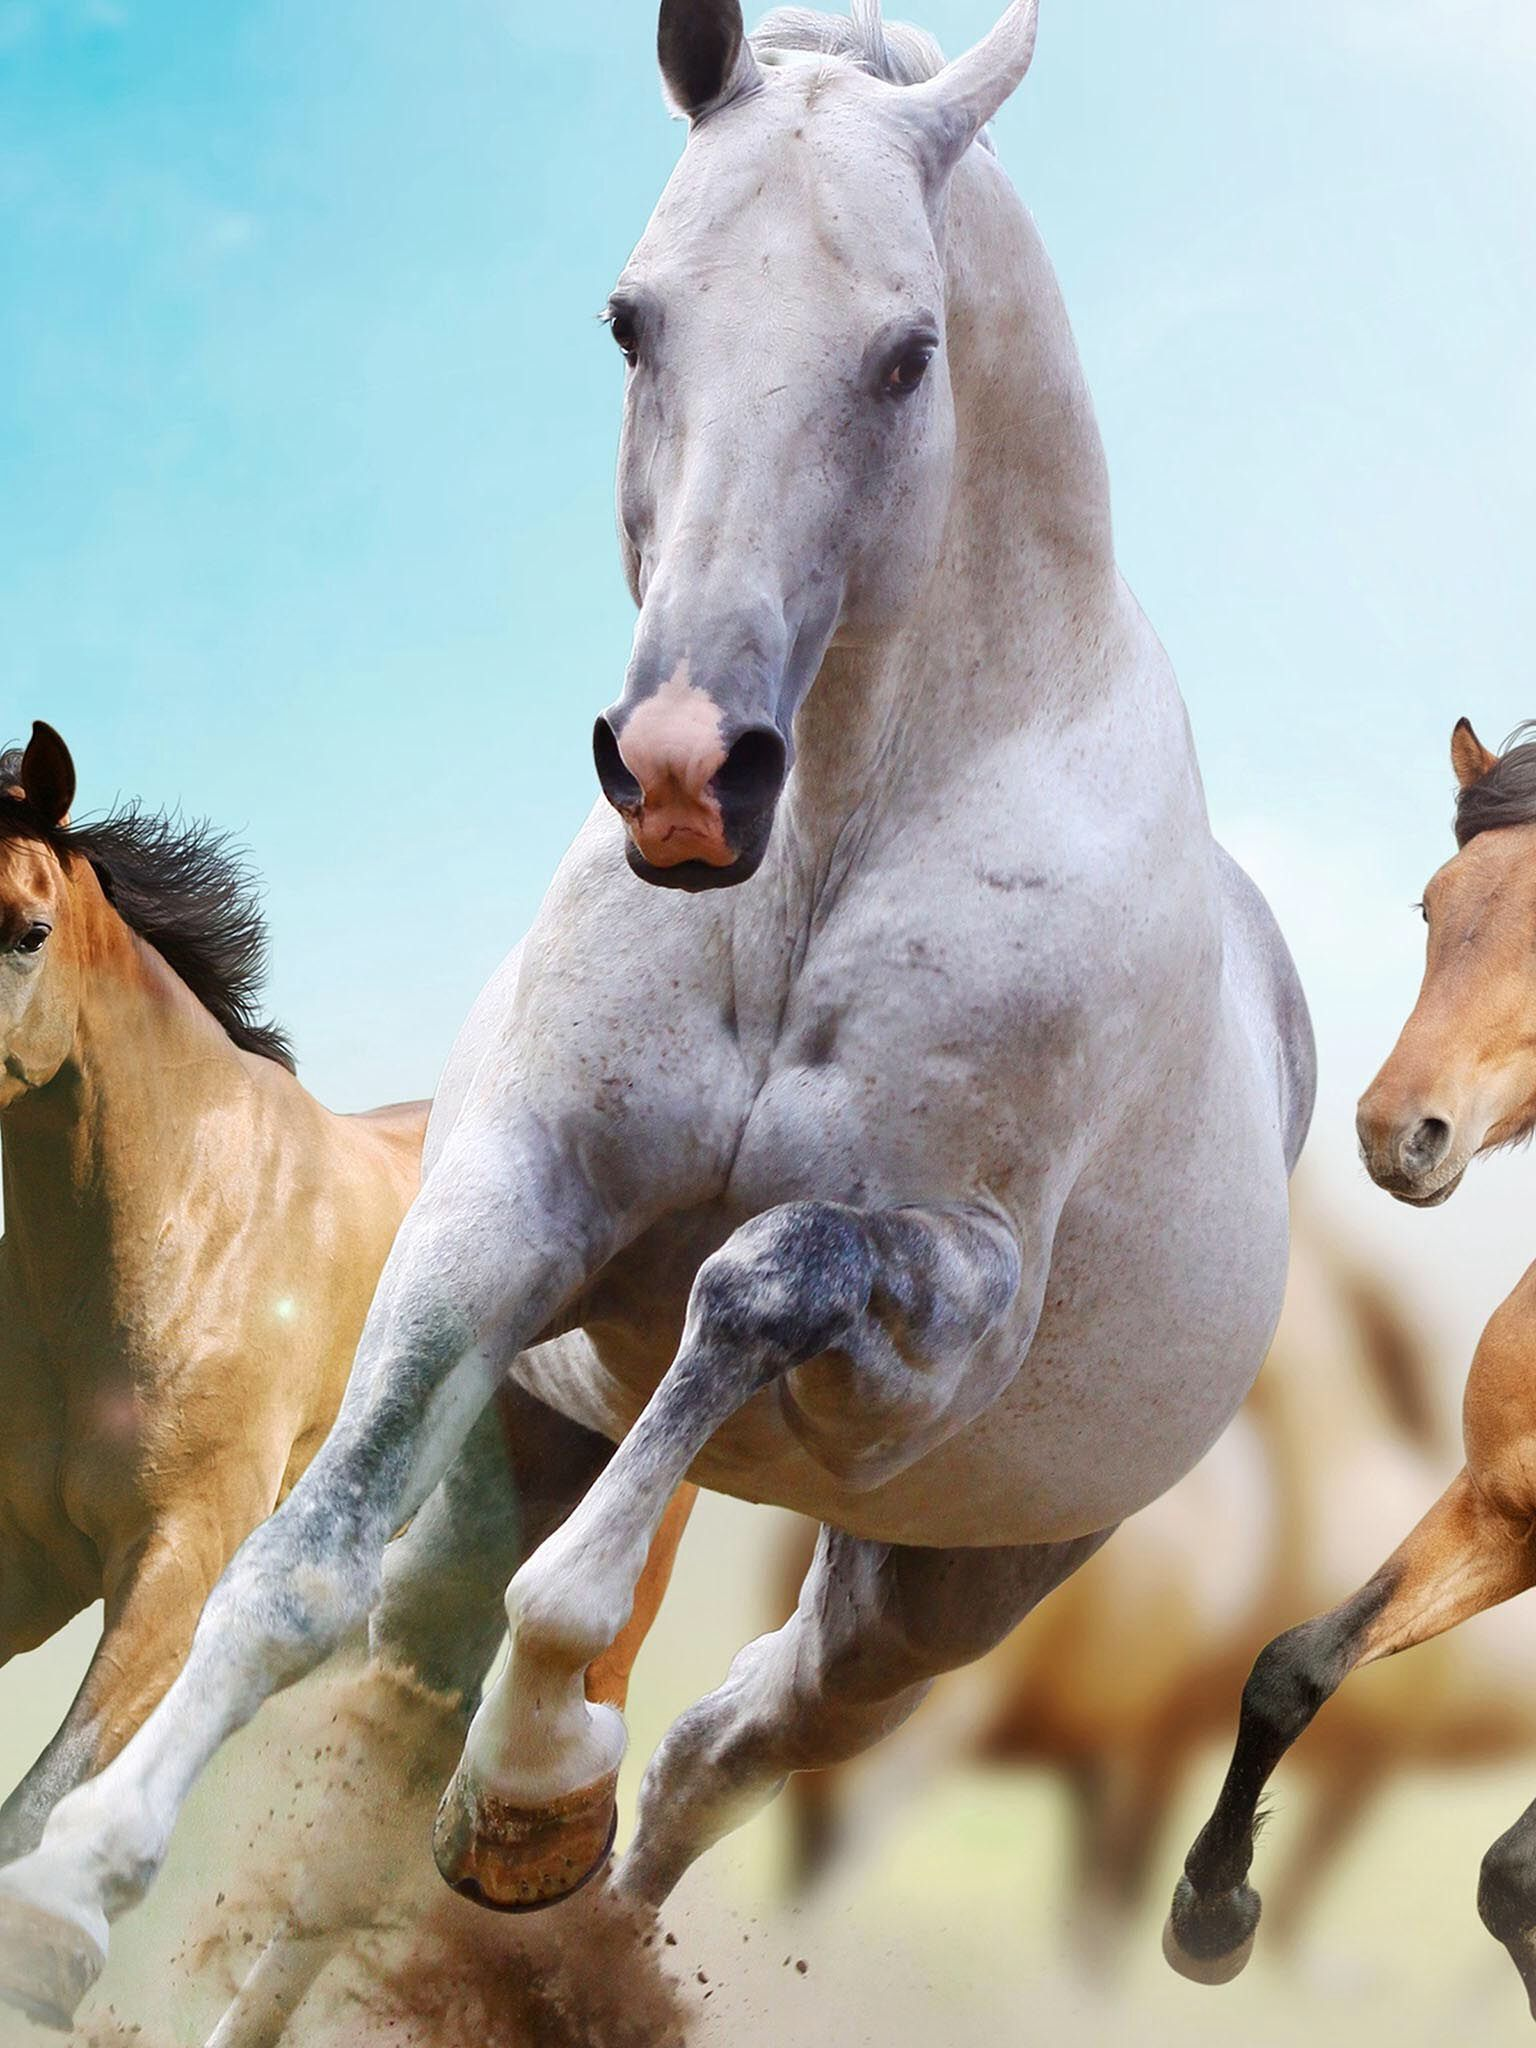 Great Wallpaper Horse Android Phone - 472e2d71baa7b72374ee9ccdc80dff6d  2018_967541.jpg